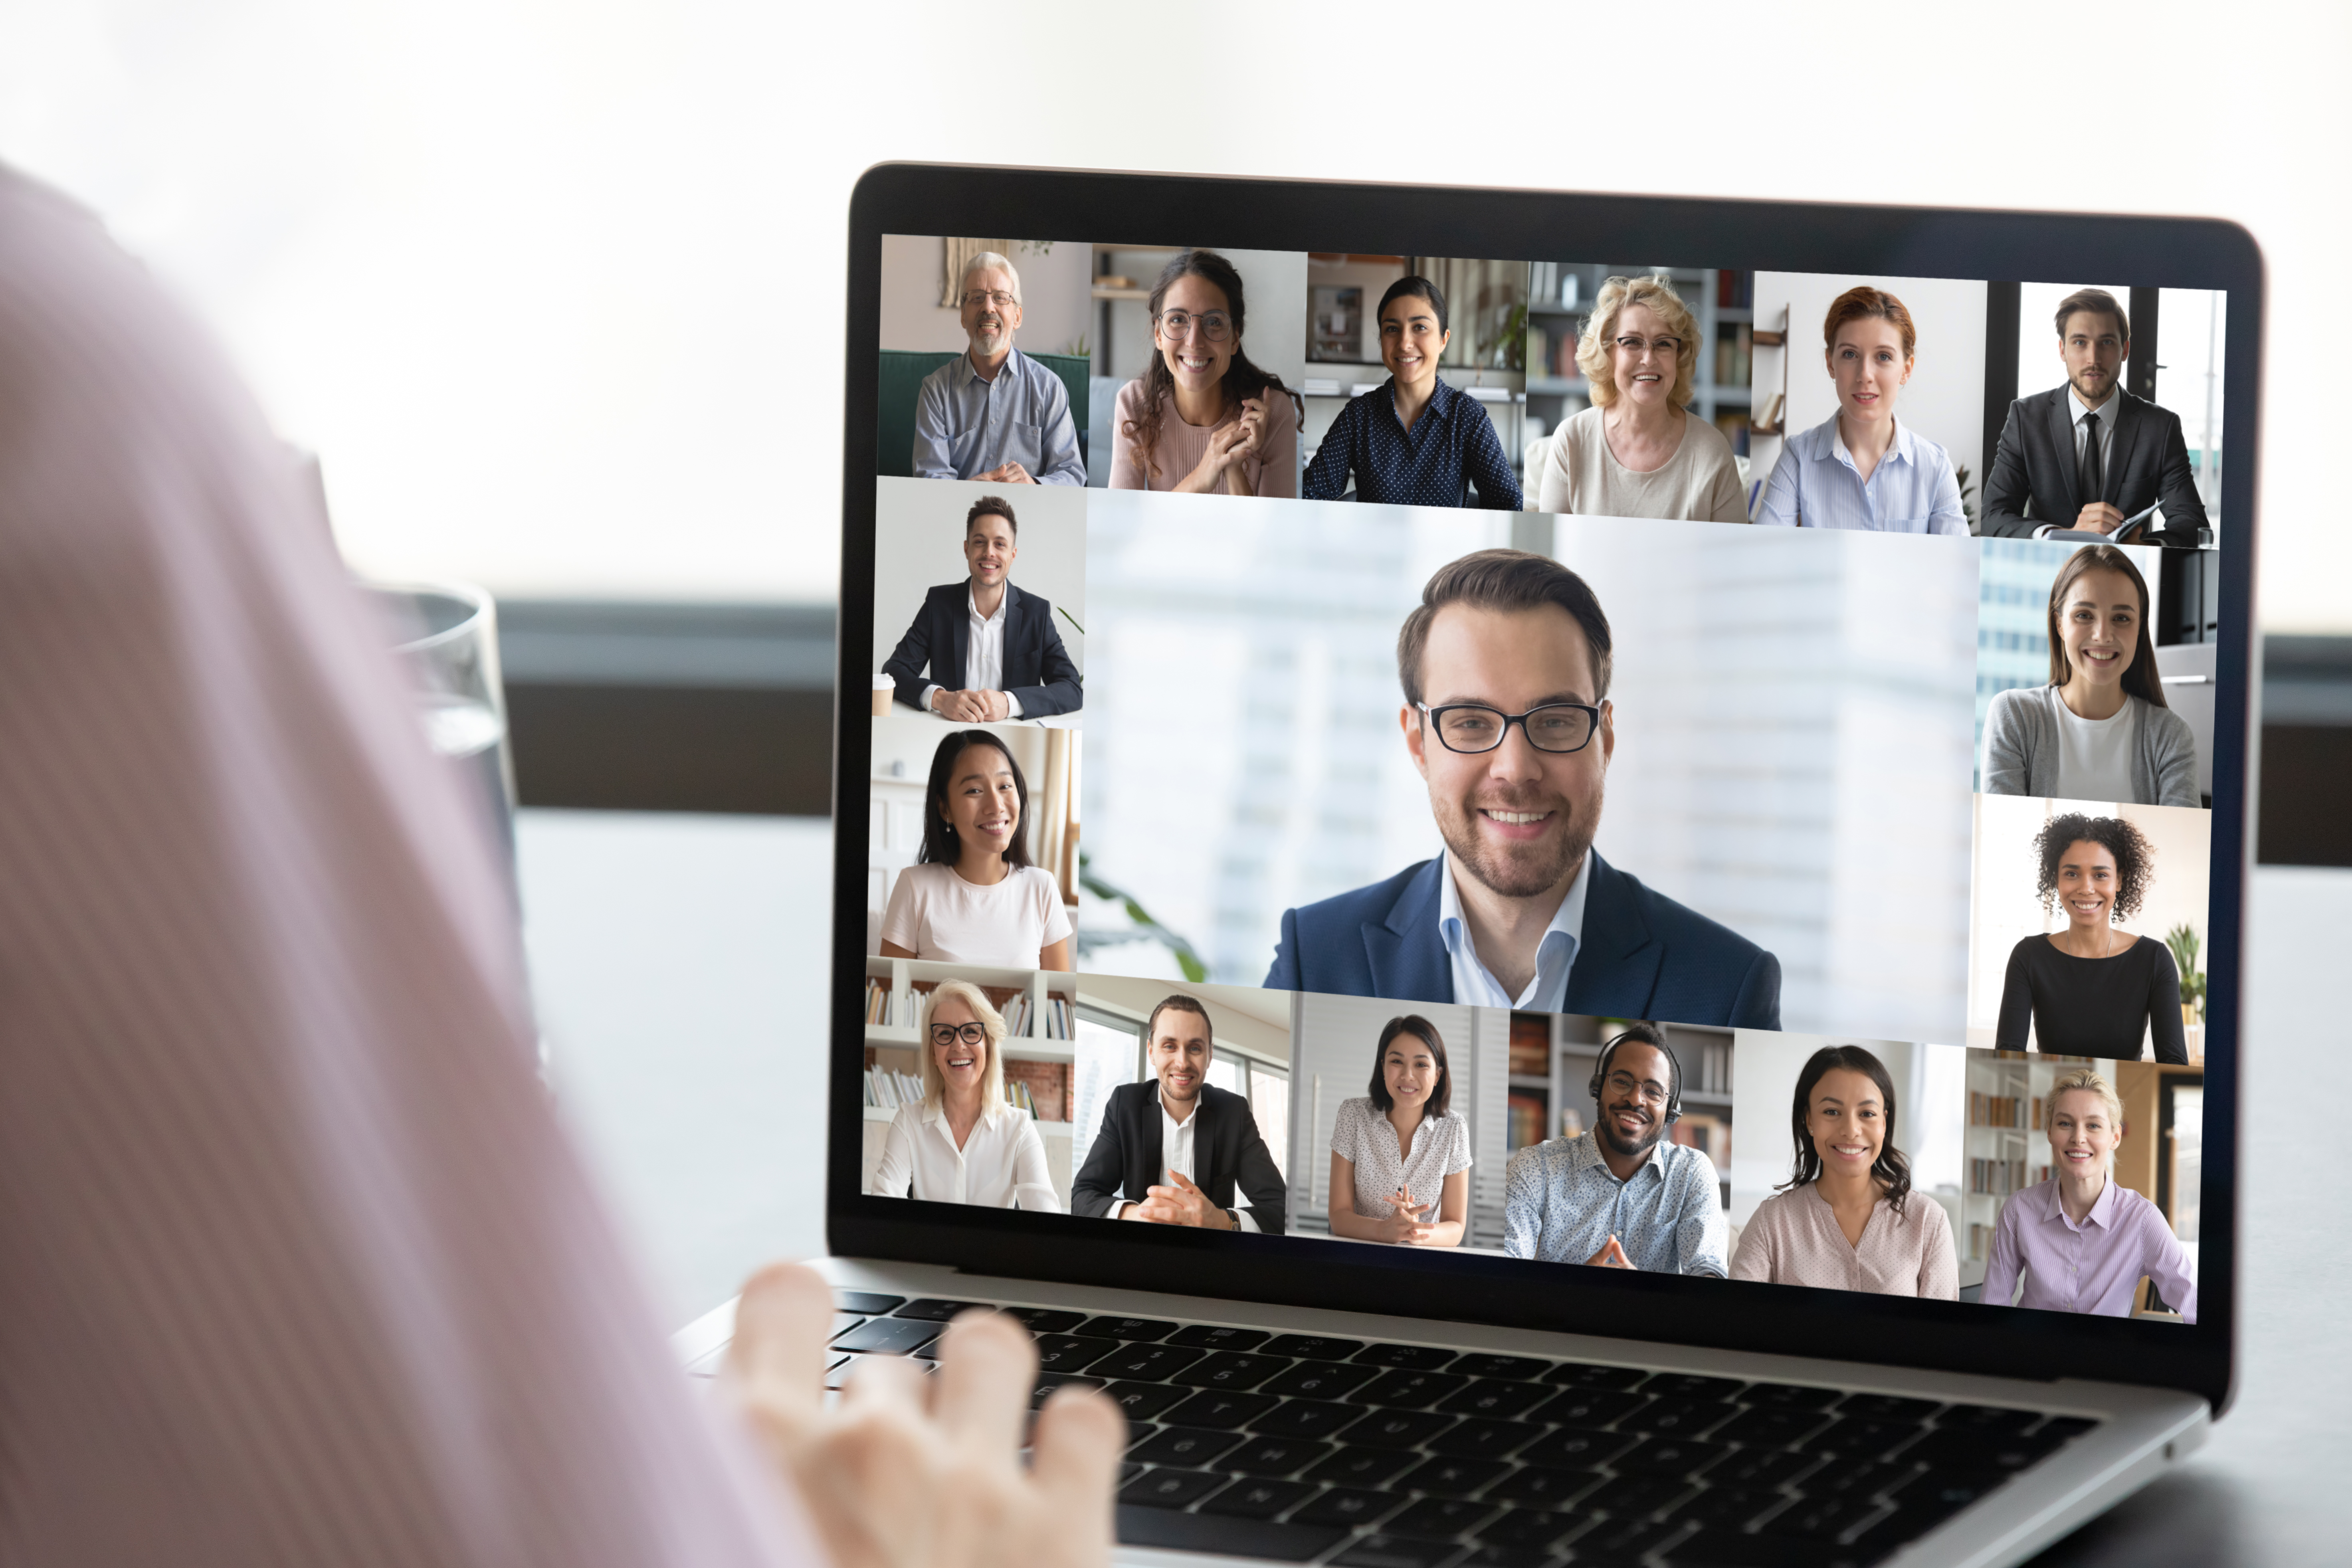 educating staff on social distancing on video conference